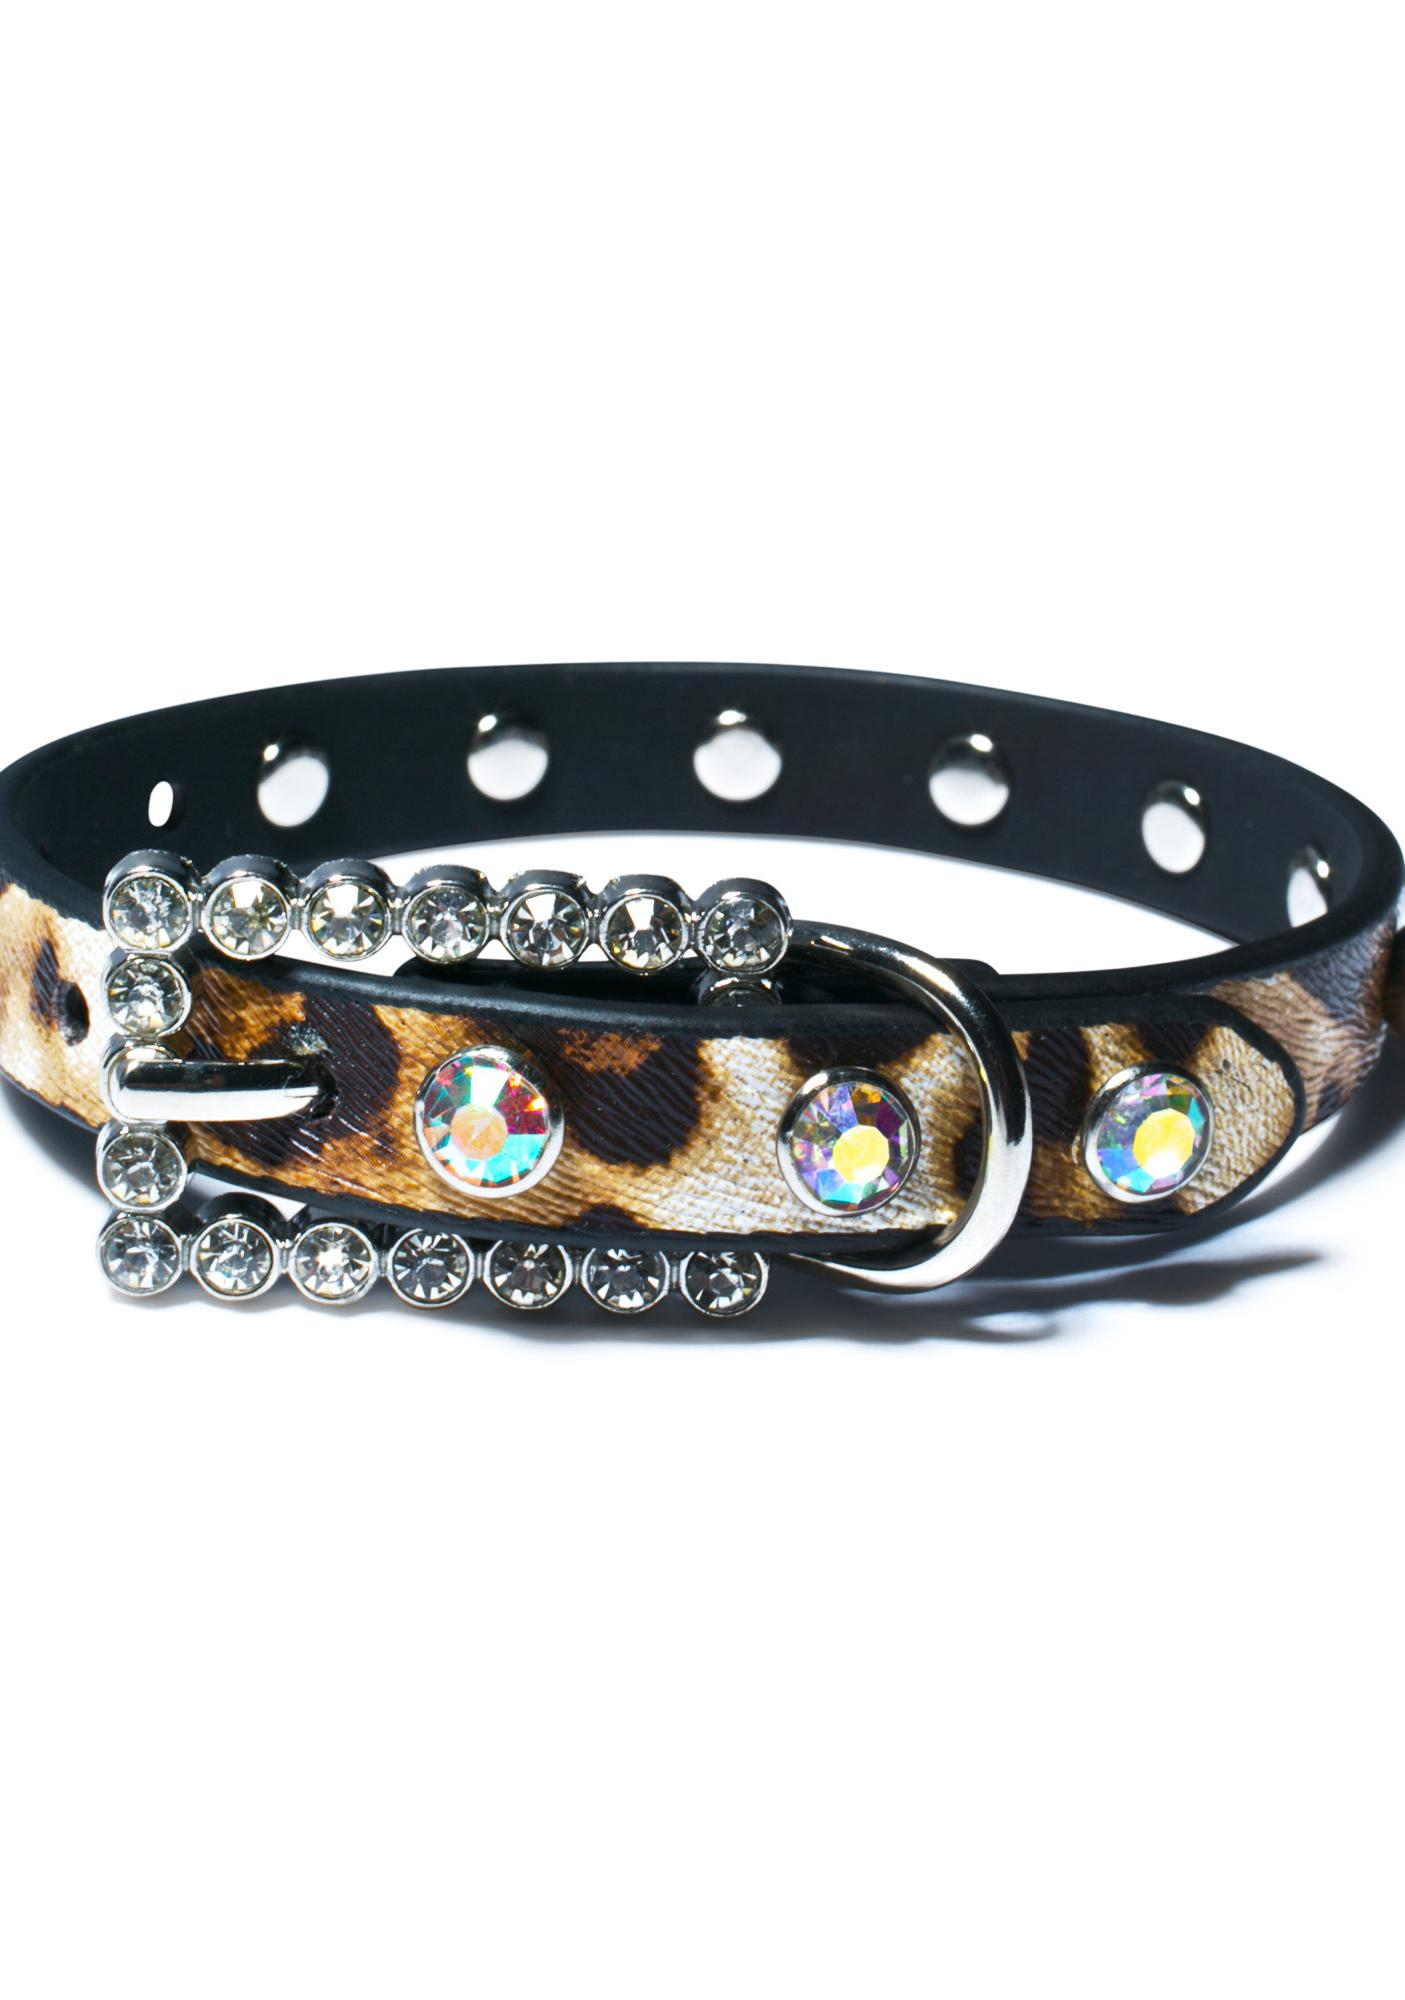 Running Wild Dog Collar